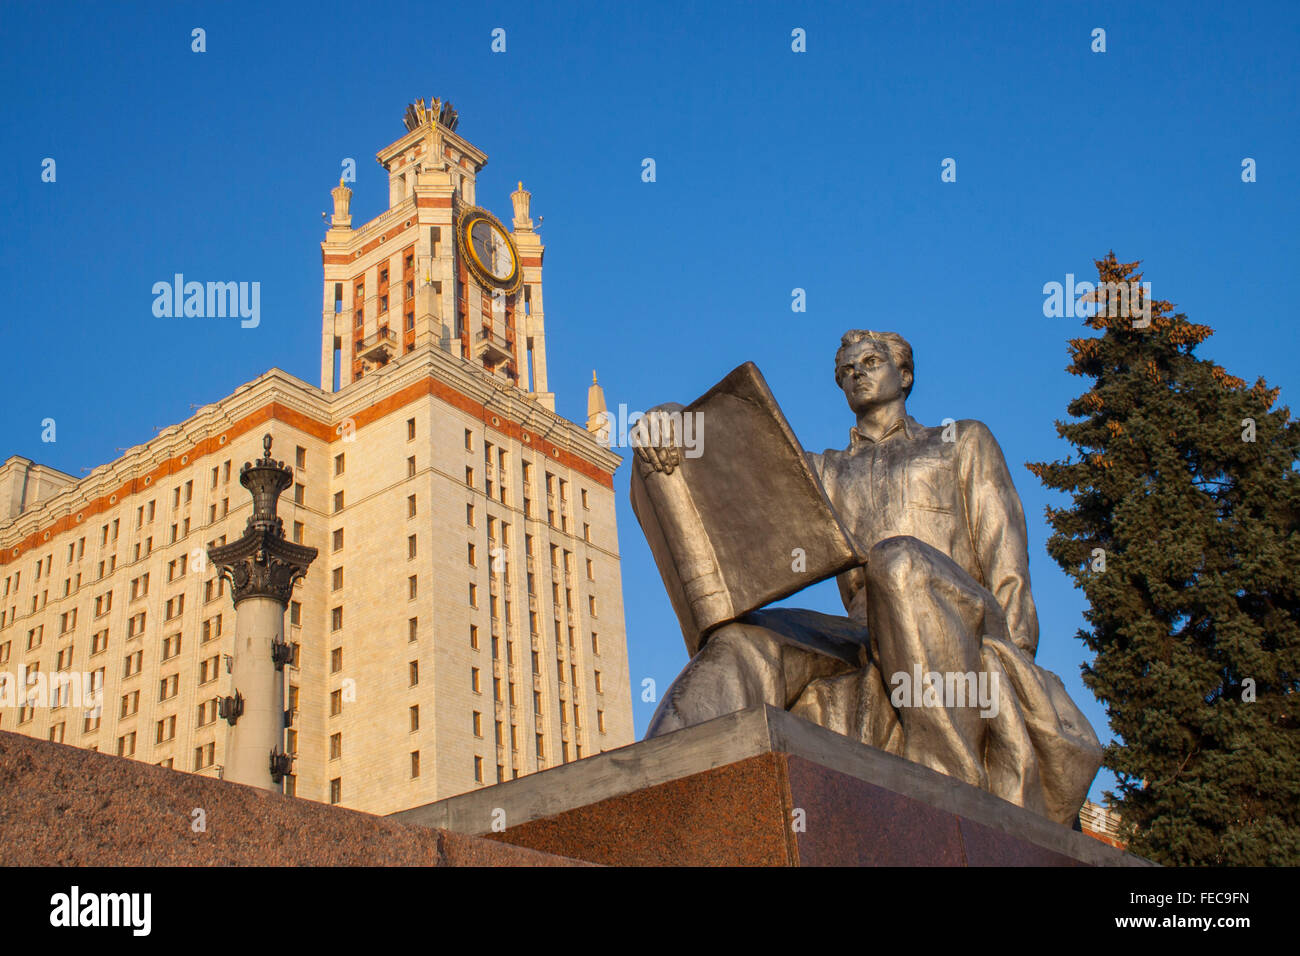 Socialist realist statue of student at Moscow State University, one of Stalin's Seven Sisters Moscow, Russia Stock Photo